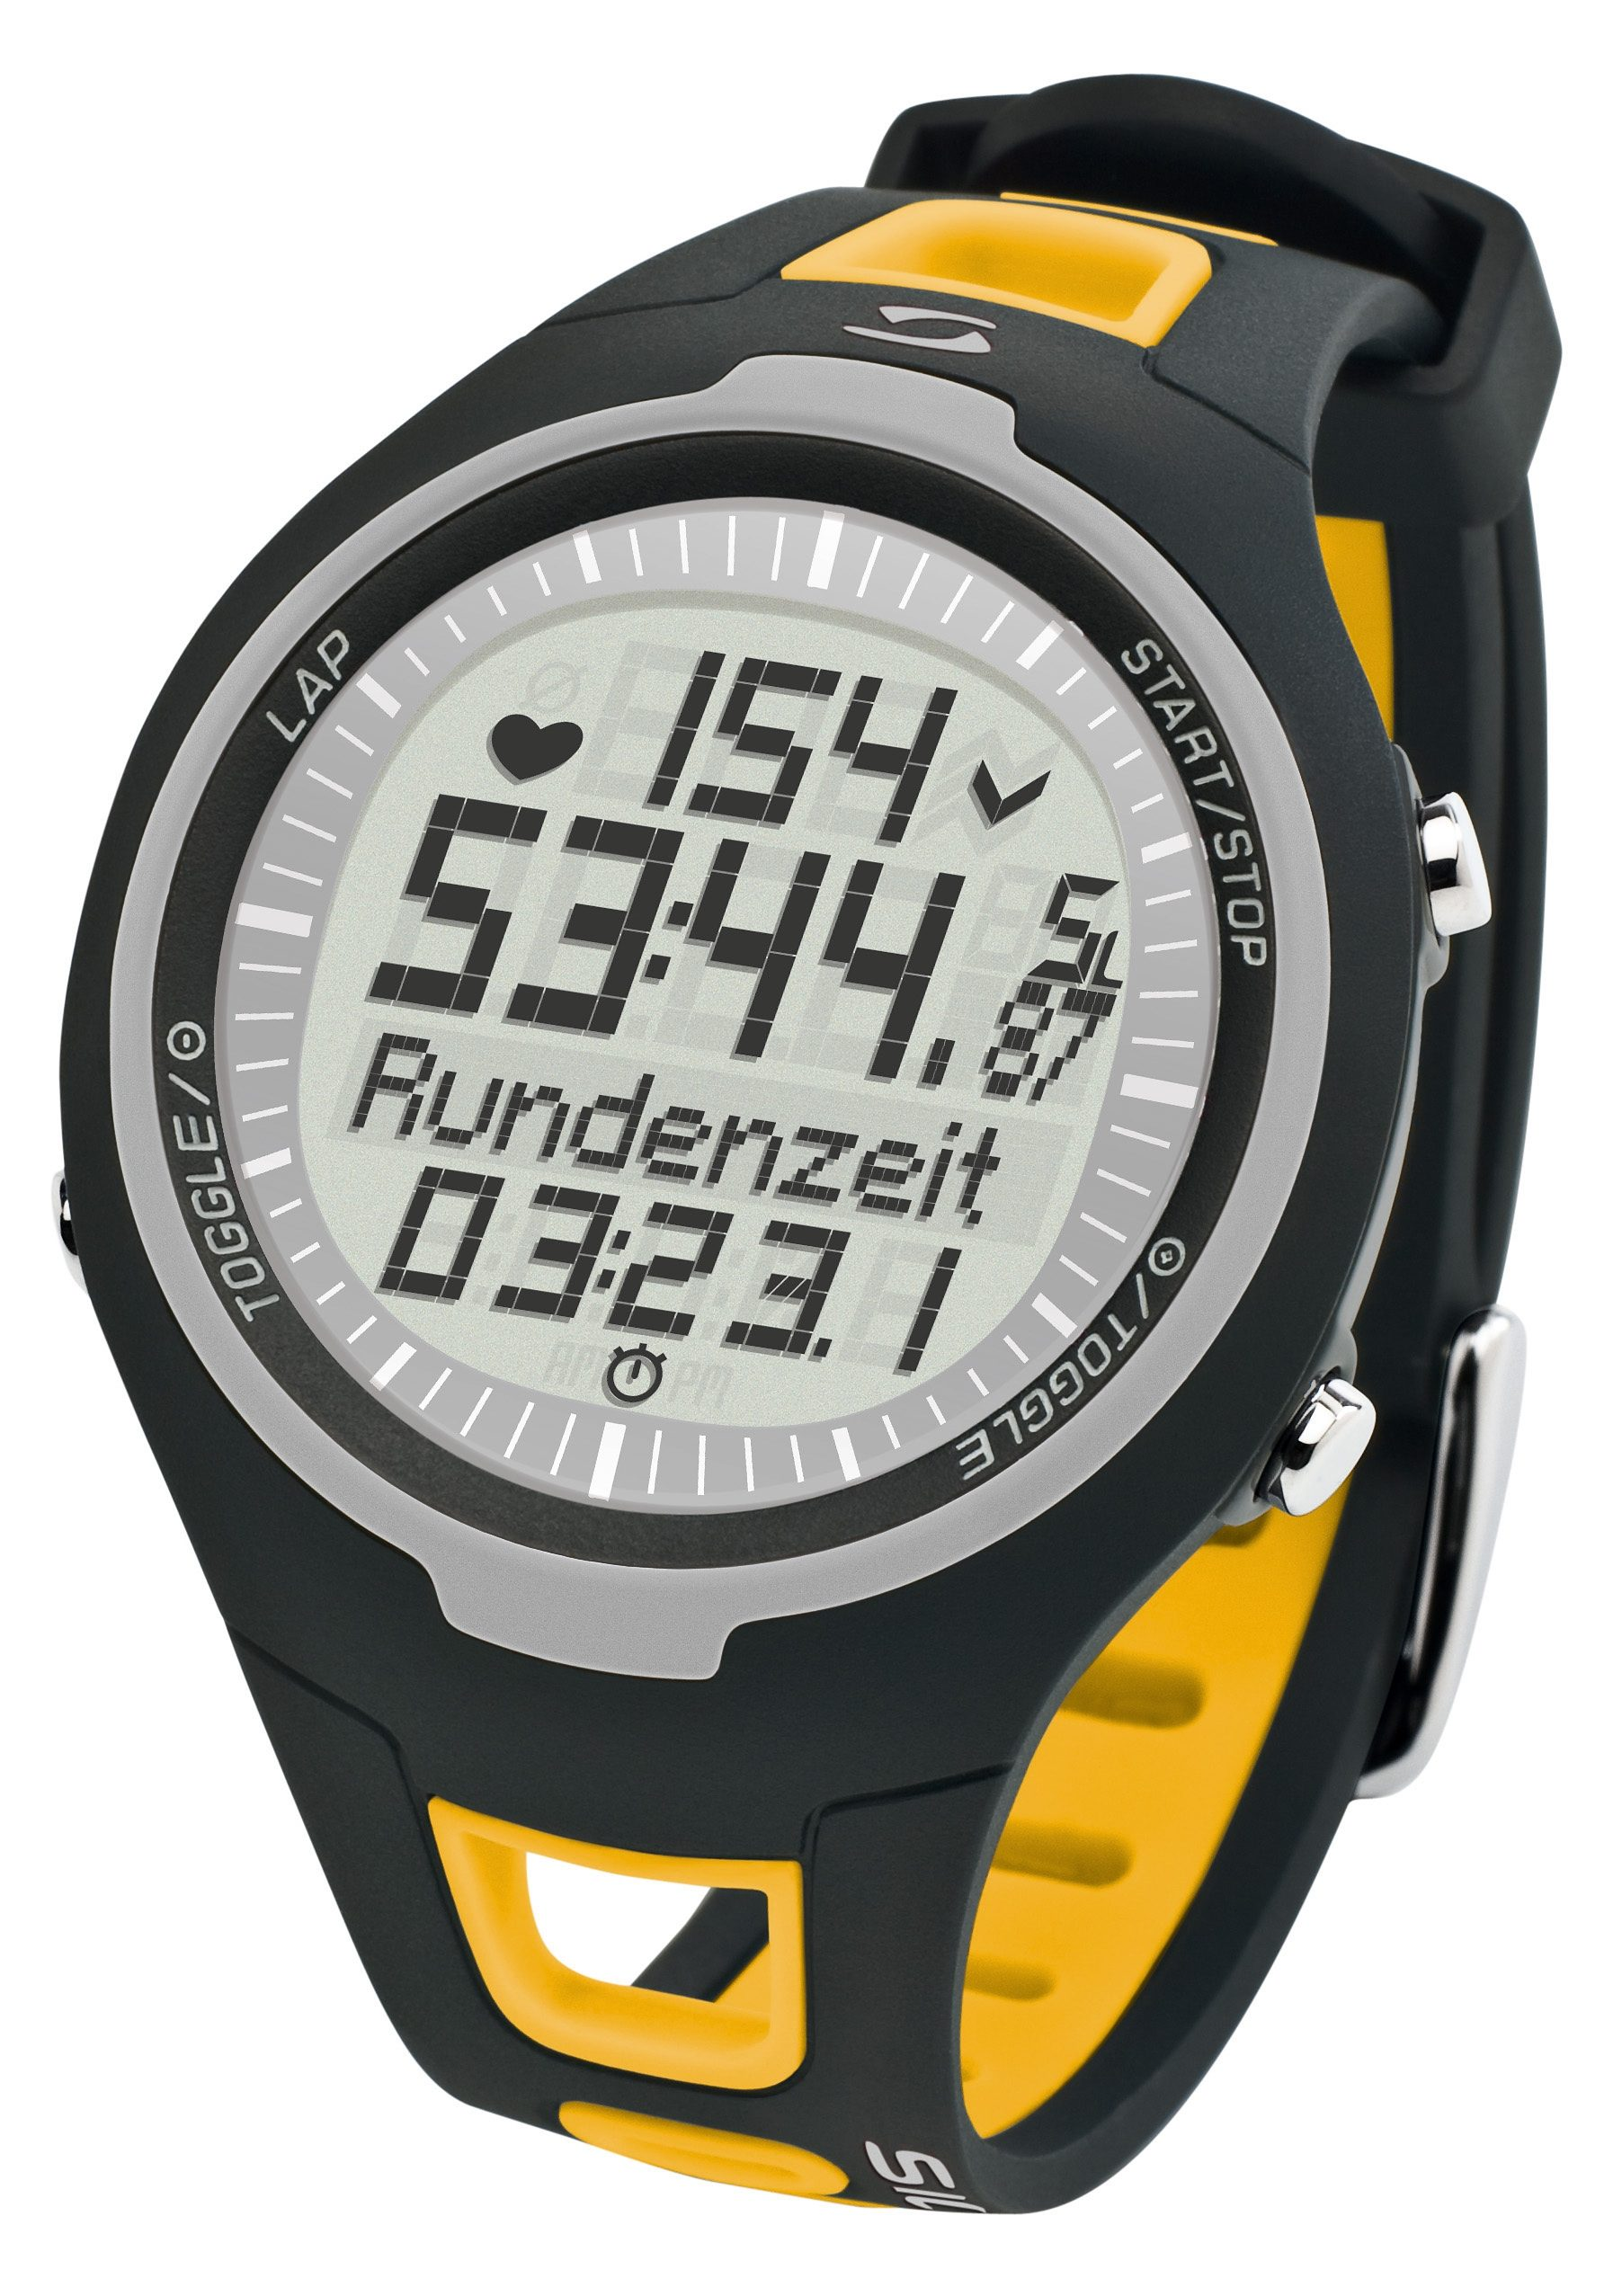 Sigma Sport Pulsuhr inkl. Brustgurt, »PC 15.11 yellow«